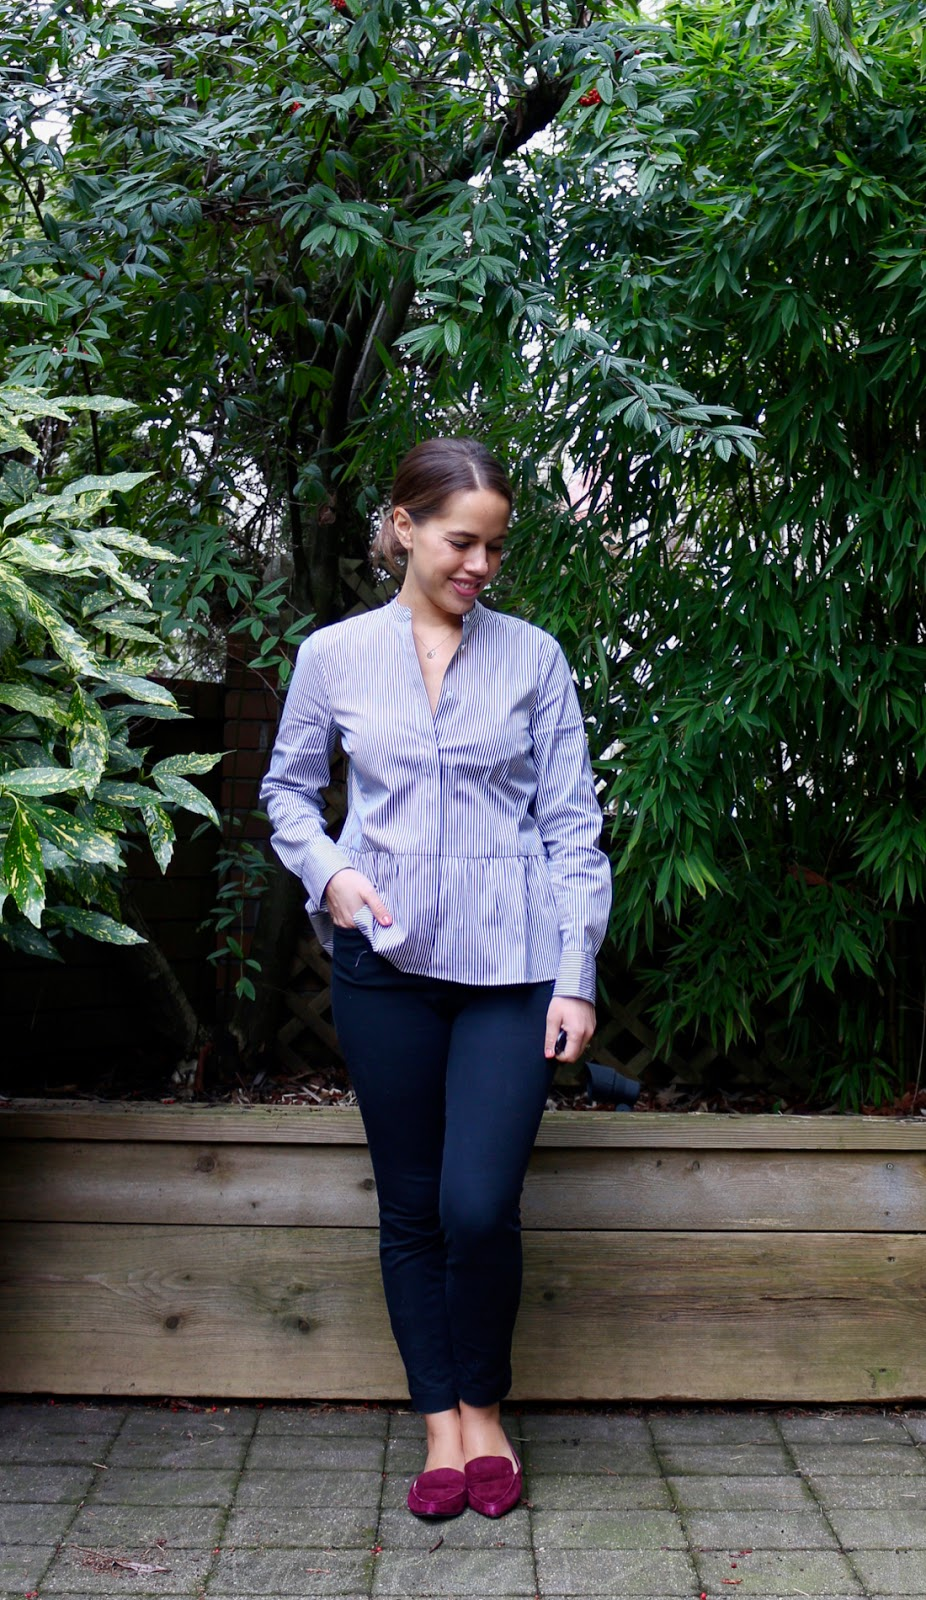 Jules in Flats - Striped Peplum Top (Business Casual Winter Workwear on a Budget)